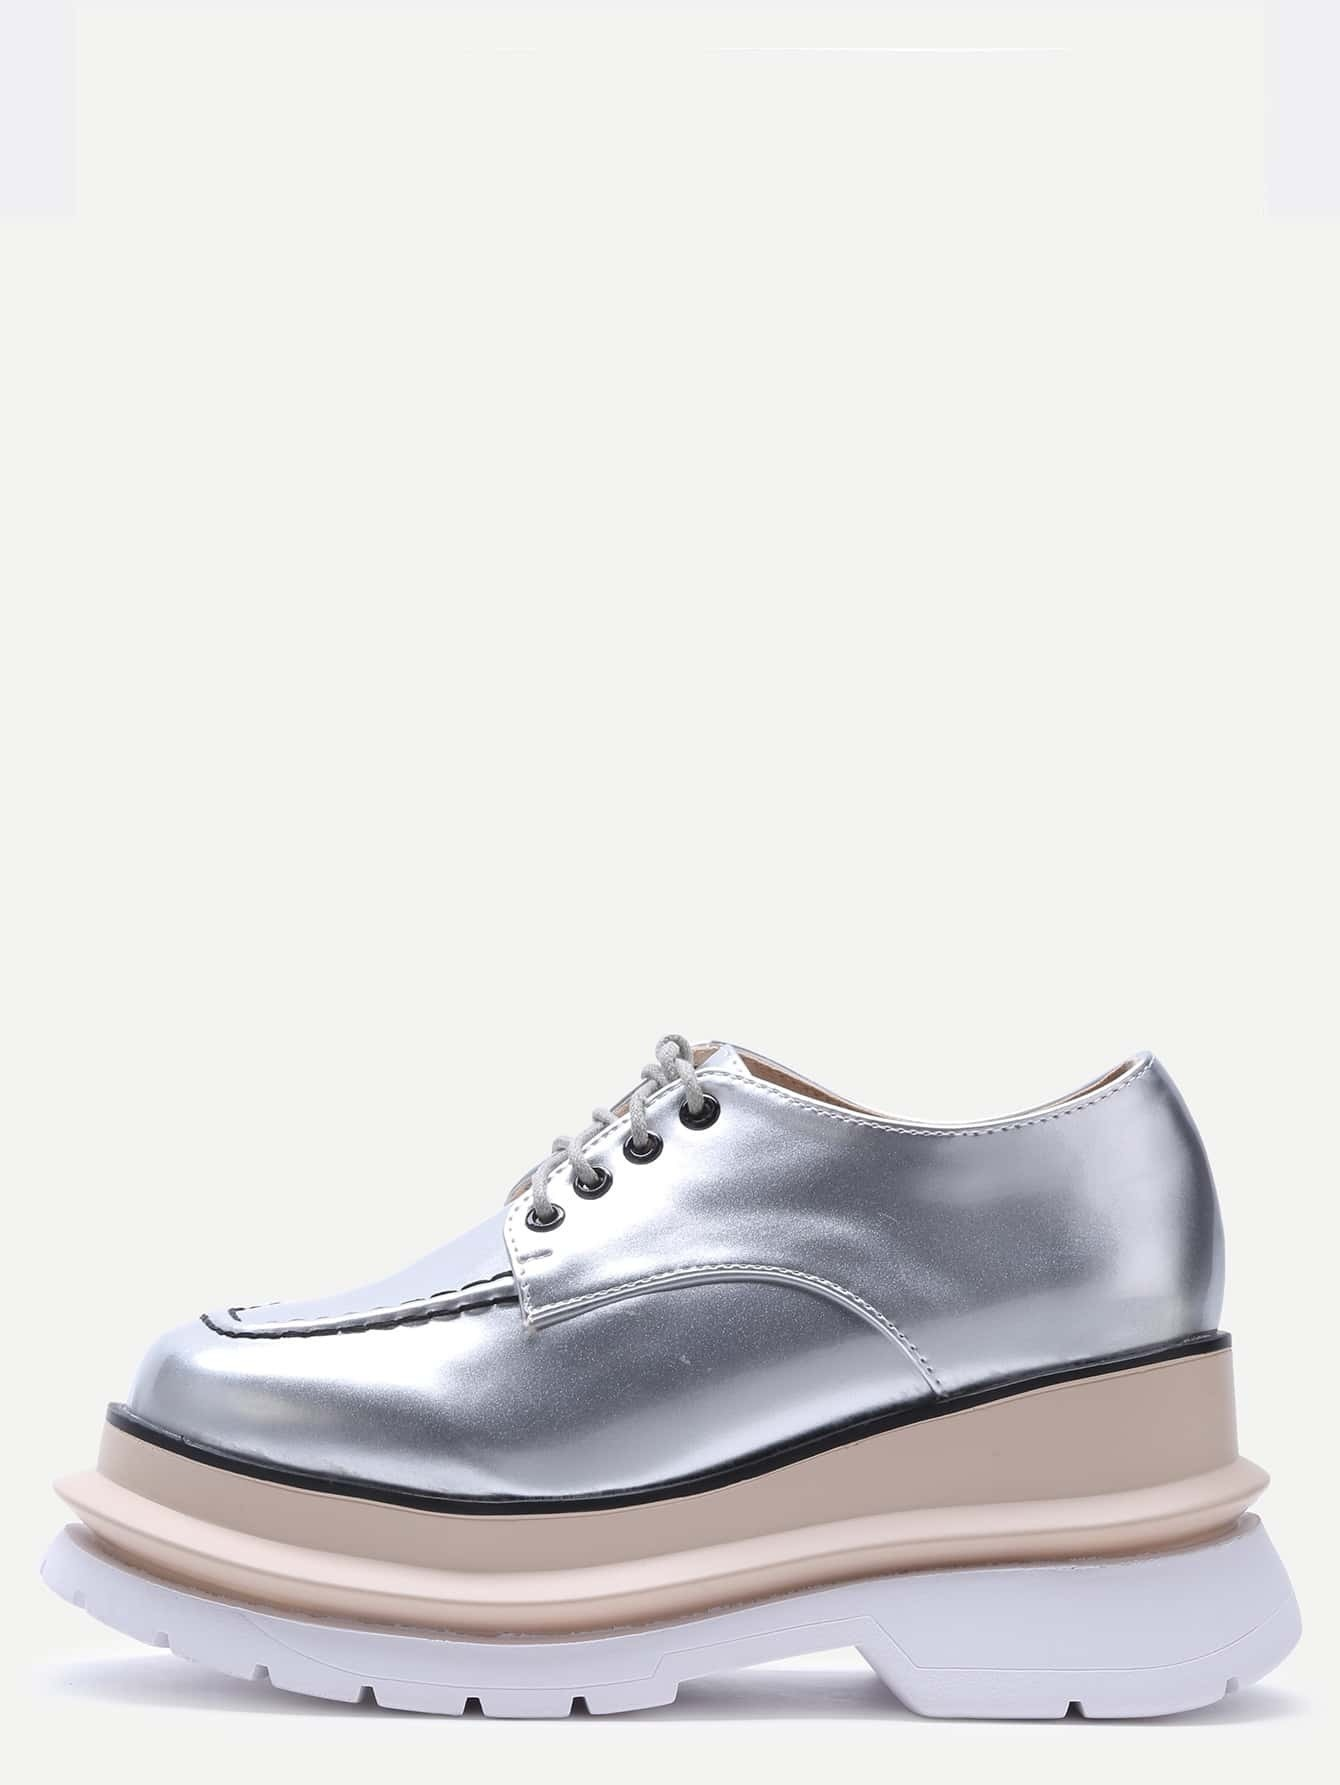 silver patent leather lace up flatform shoes